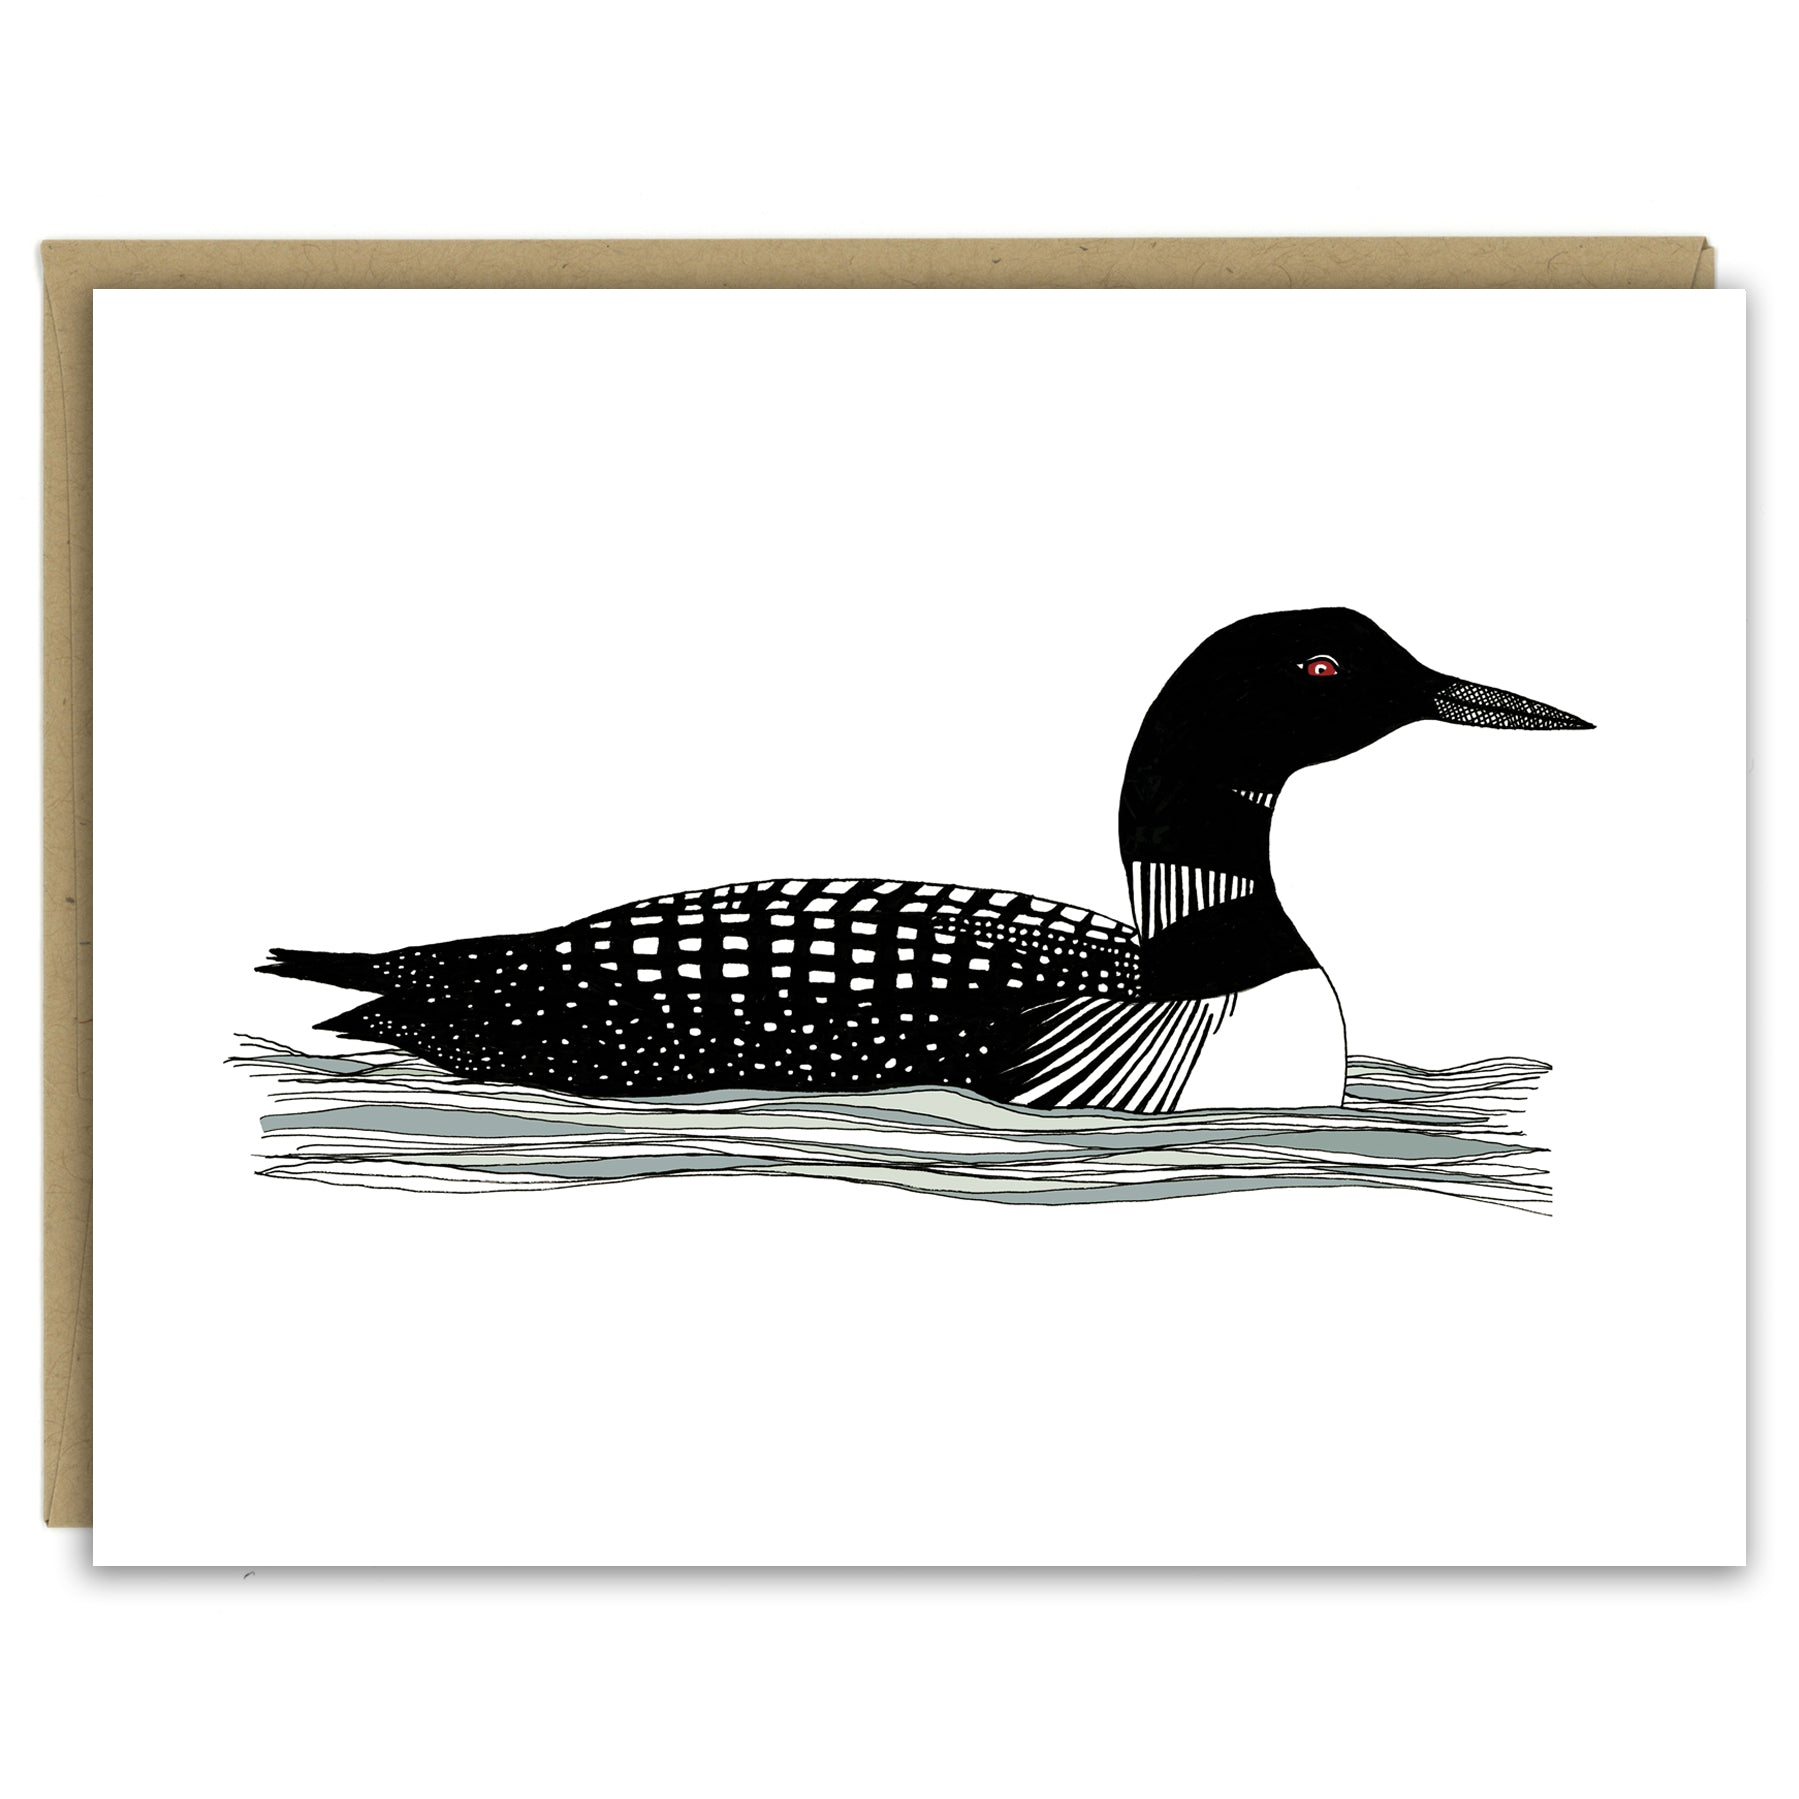 A greeting card showing a hand-drawn illustration of a black and white loon with its signature red eye, floating gently on the waves. Shown with a Kraft paper envelope on a white background.